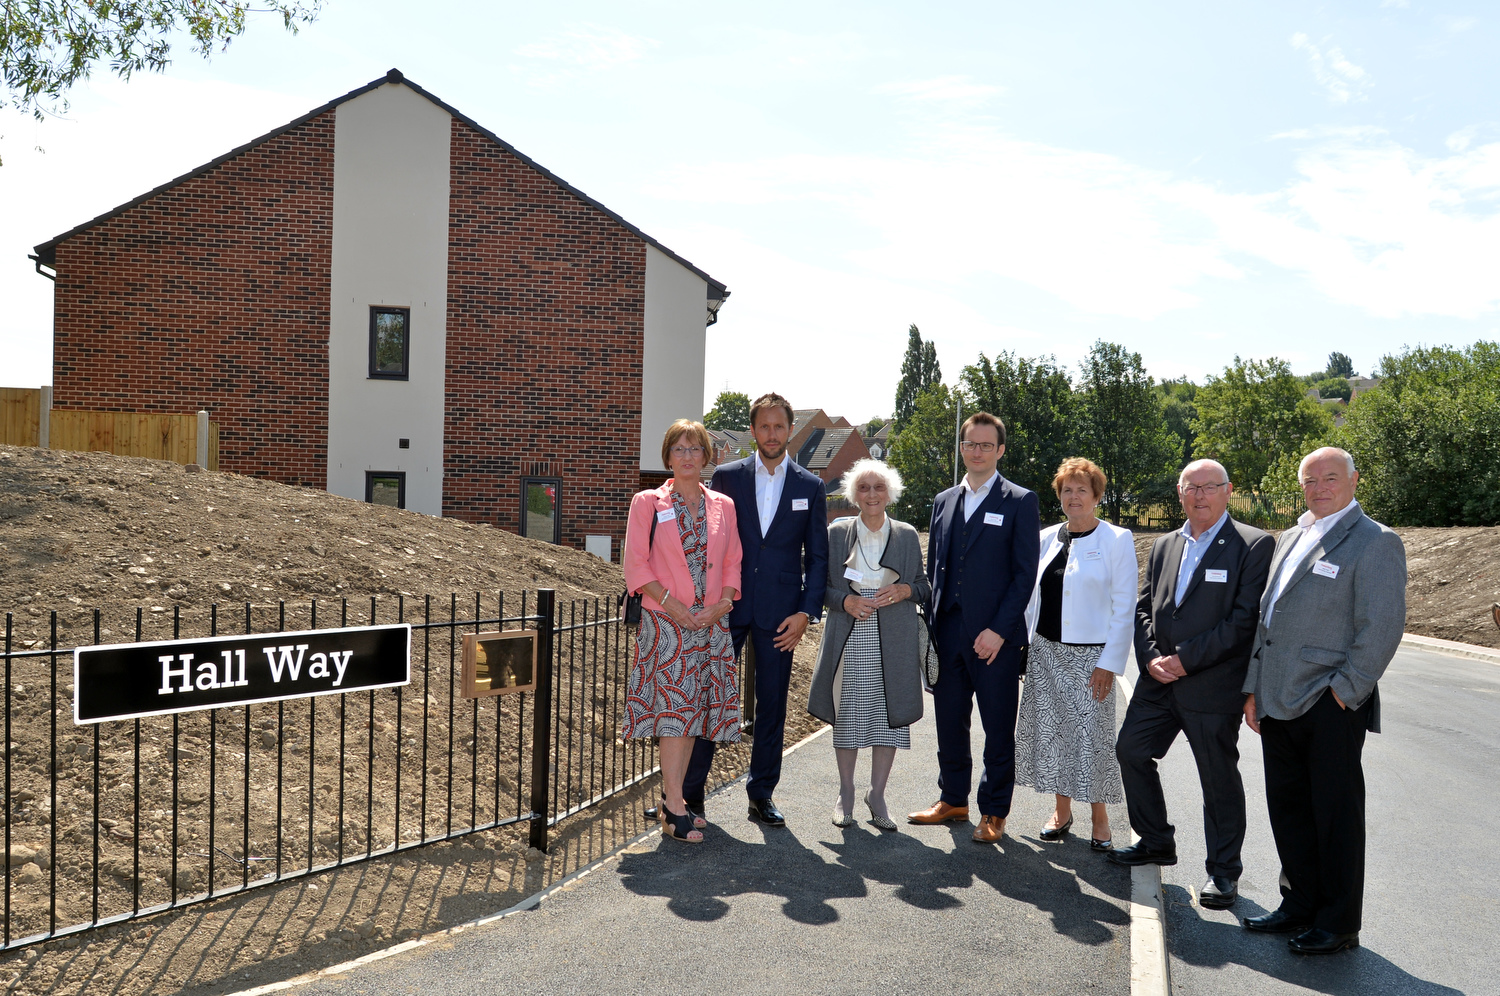 The Hall family with the commemorative plaque and street sign in honour of Graham Hall.